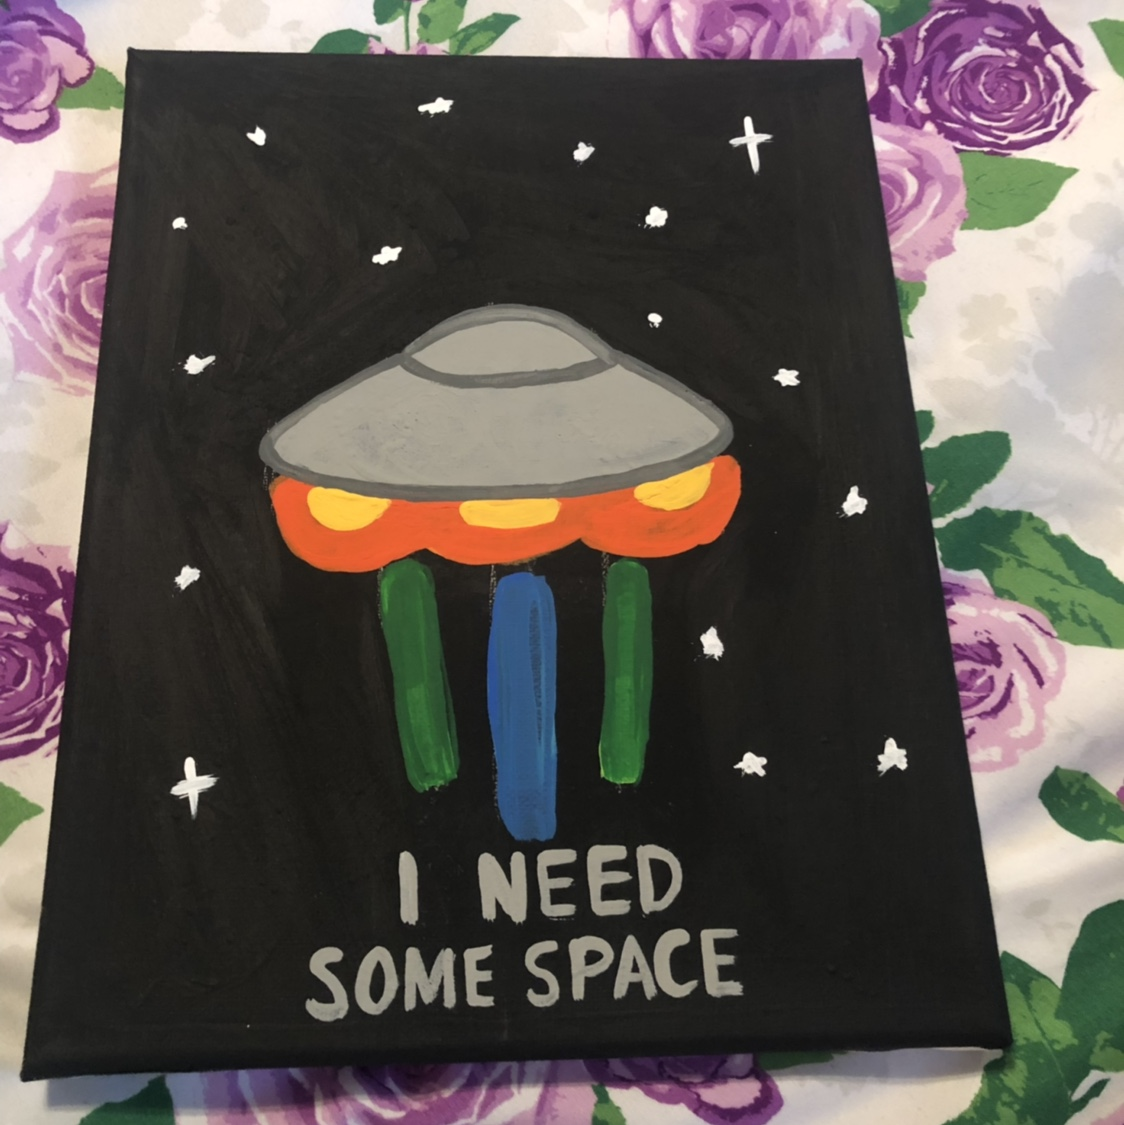 I need some space painting, spaceship   Acrylic    - Depop